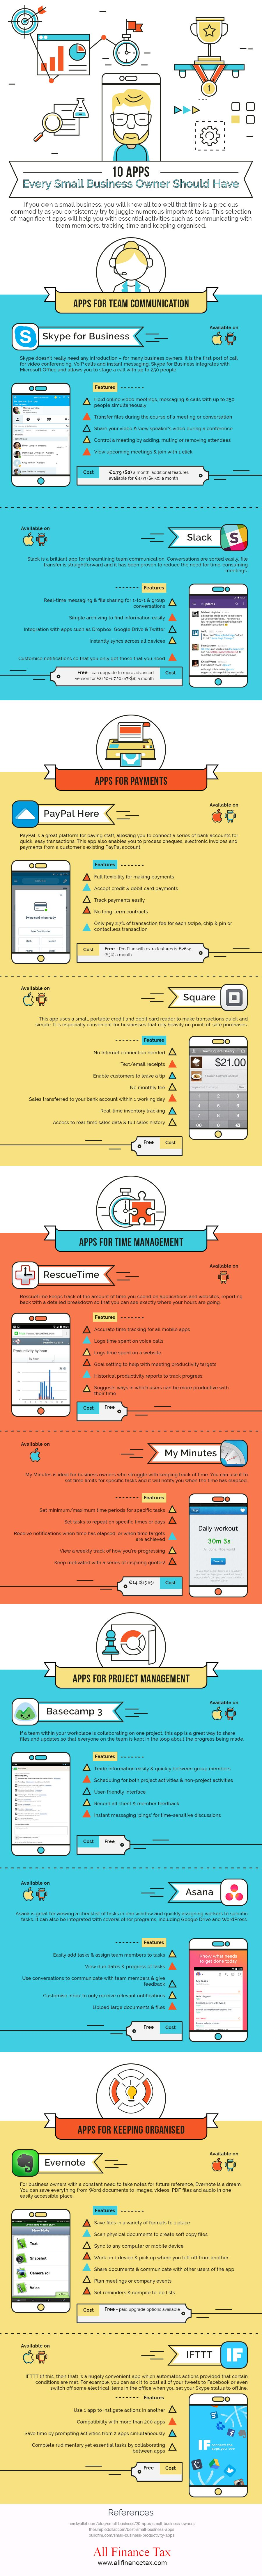 10 Apps Every Small Business Owner Should Have: Infographic